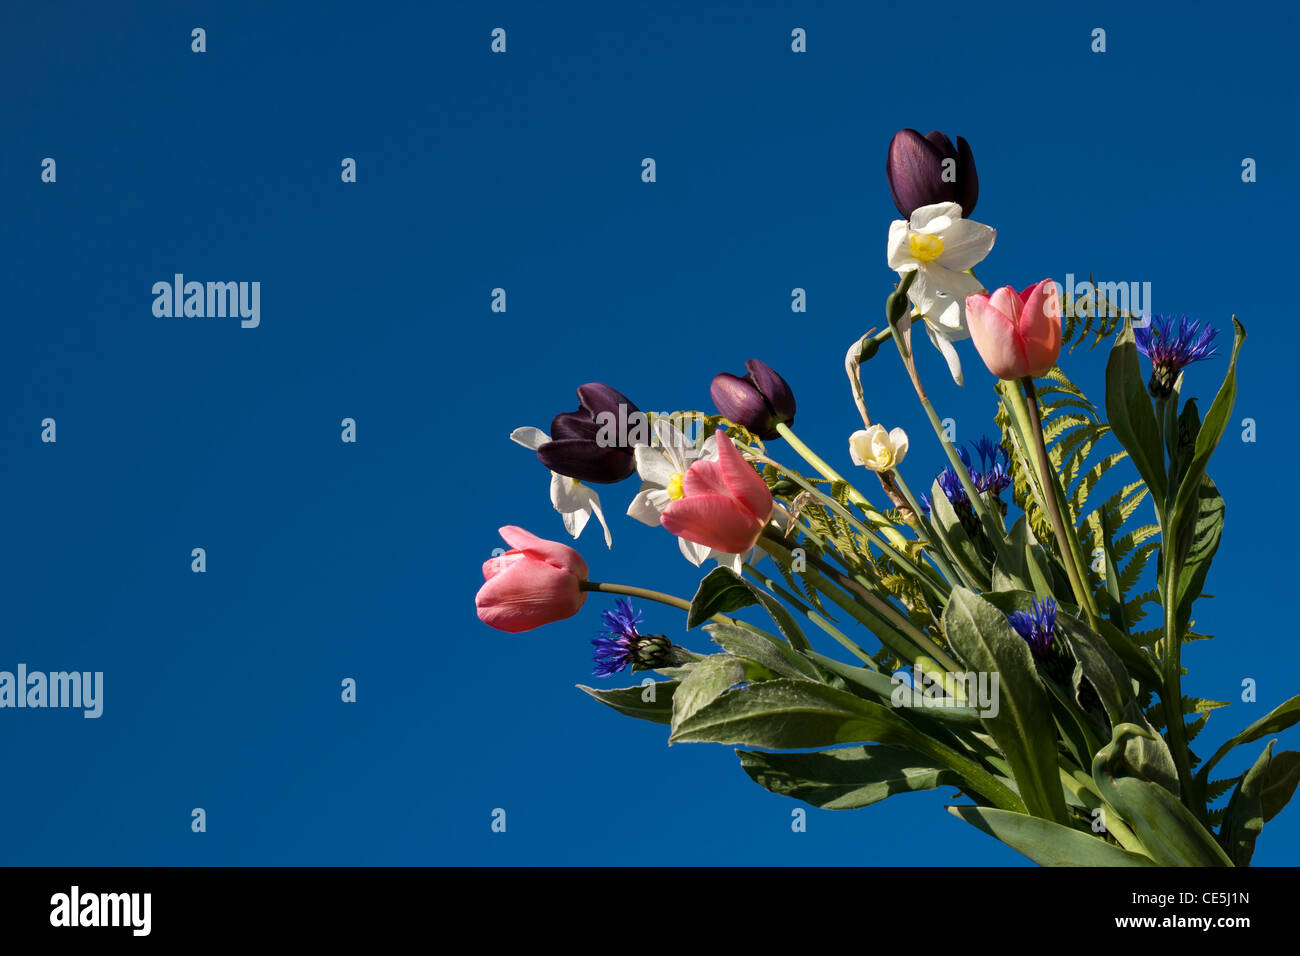 Spring flower bouquet over a  blue sky - Stock Image